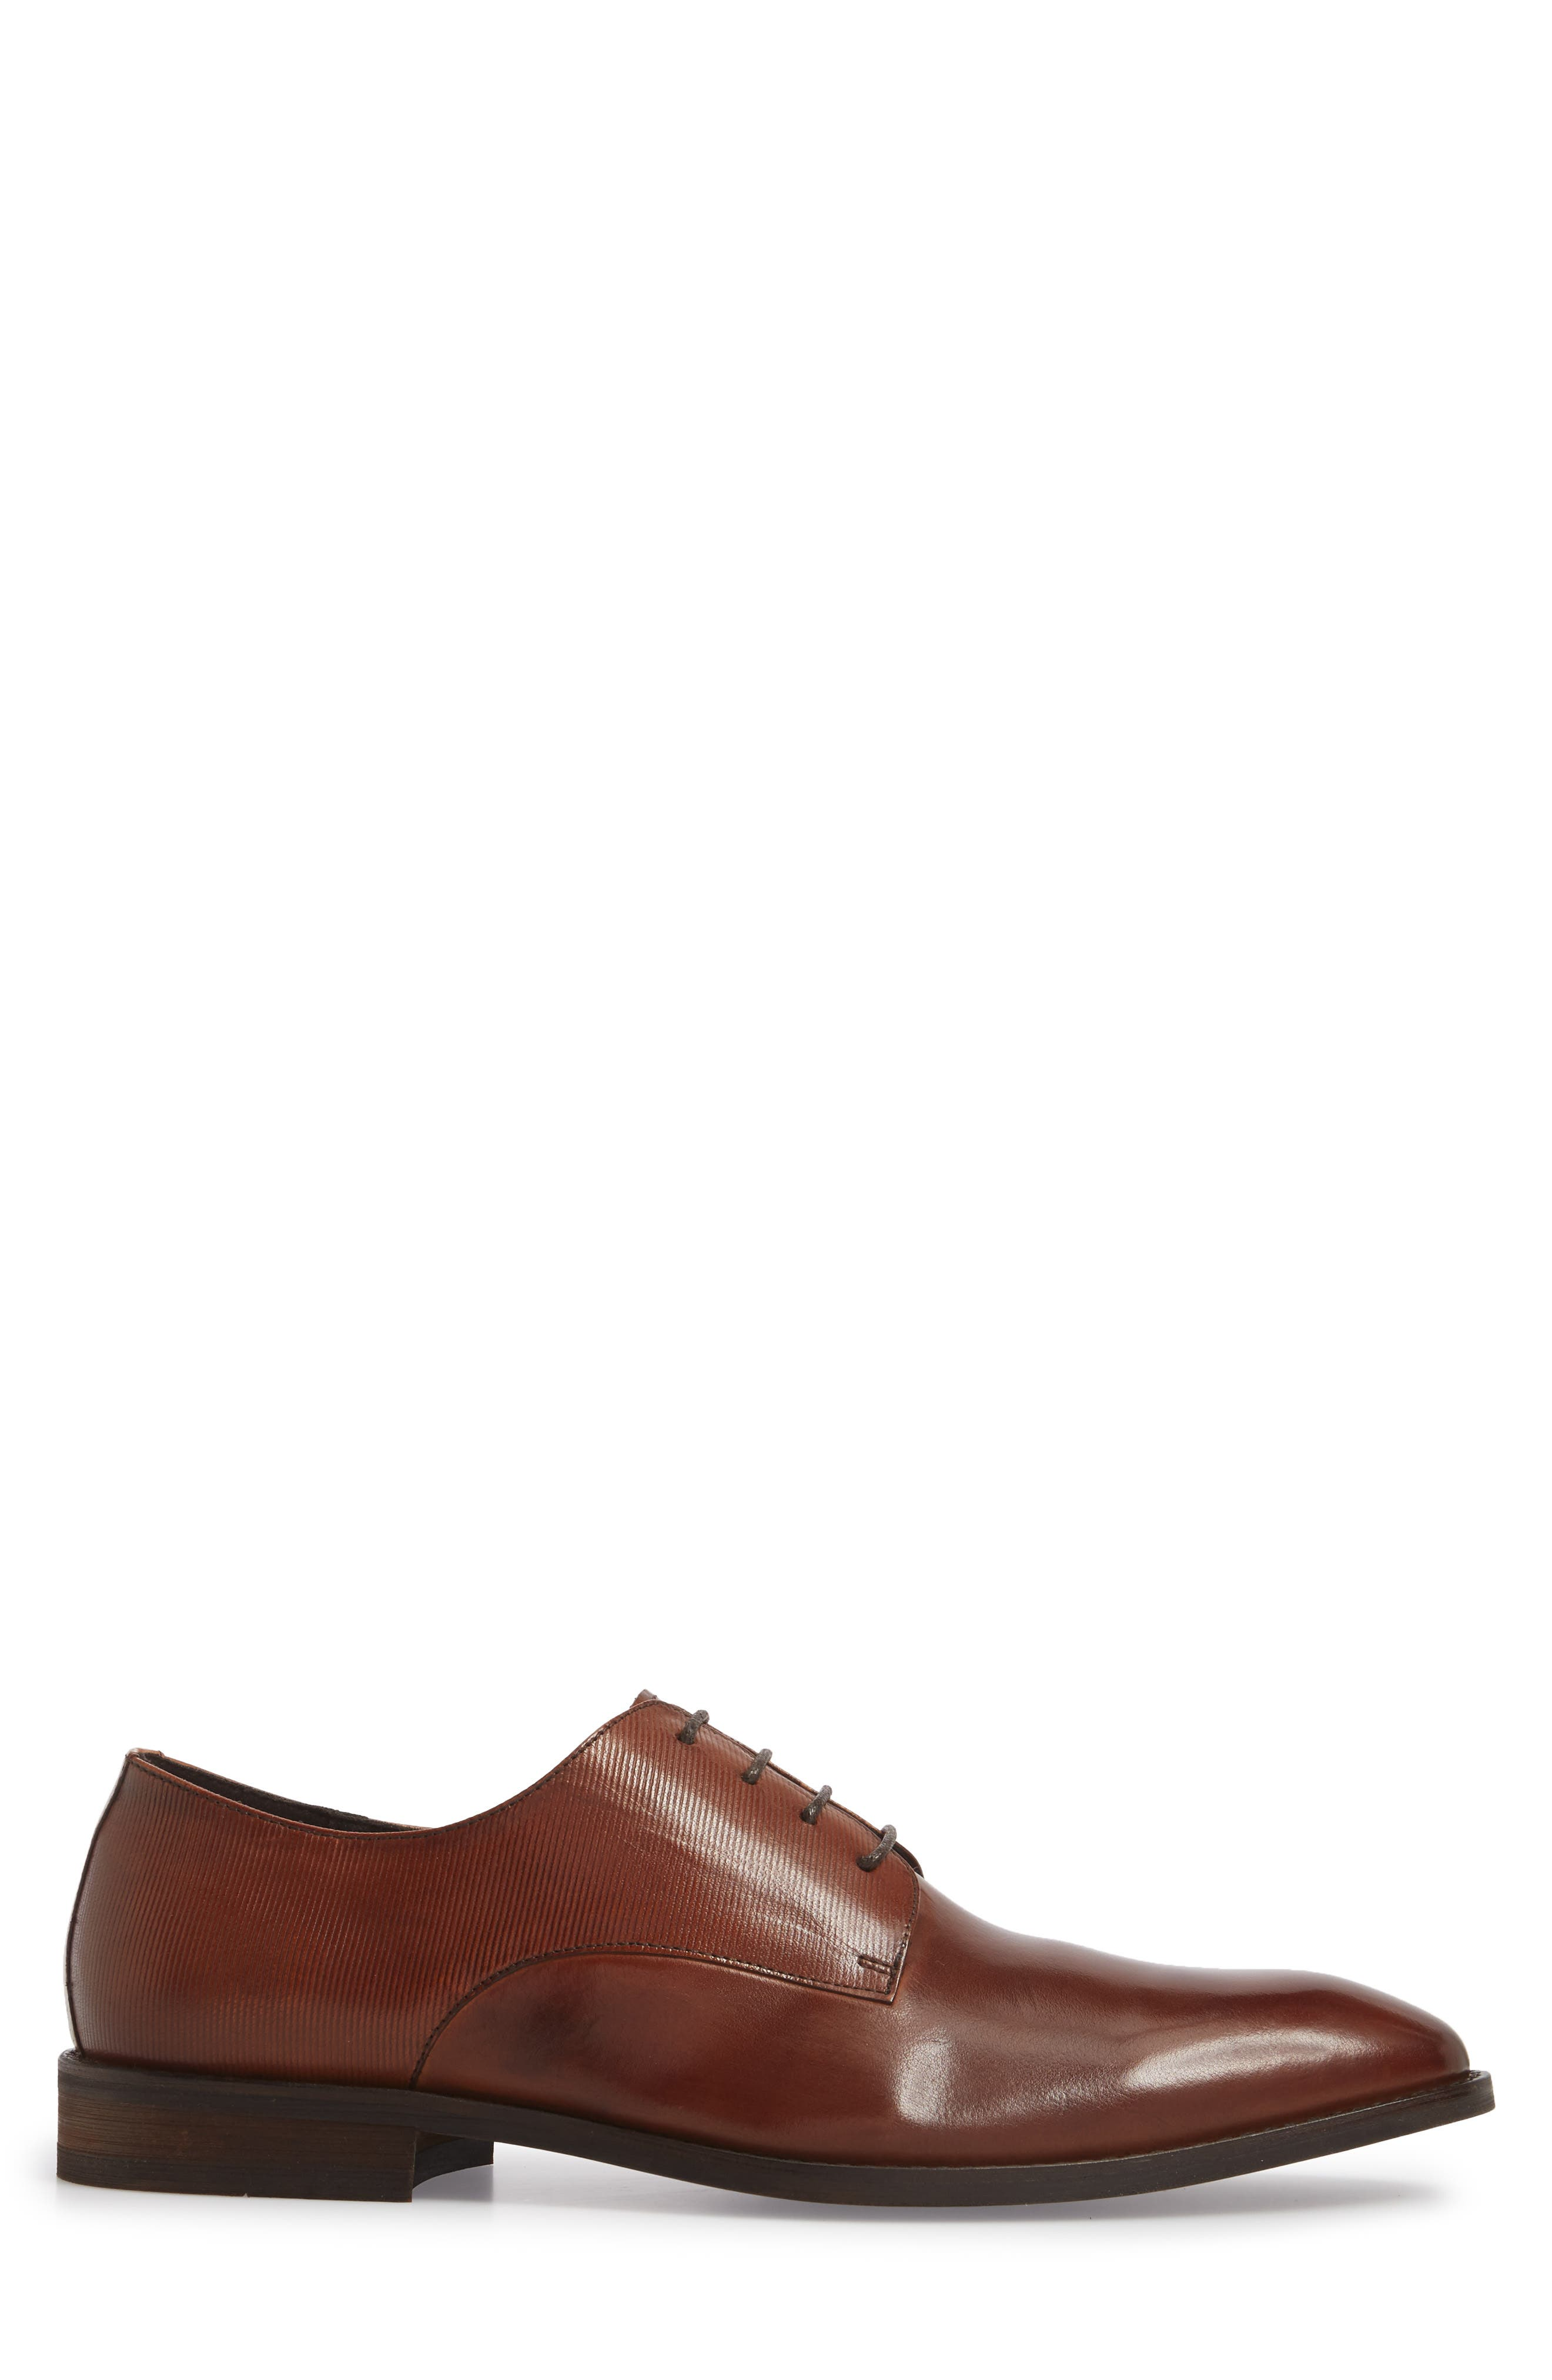 KENNETH COLE NEW YORK, Courage Plain Toe Derby, Alternate thumbnail 3, color, 200